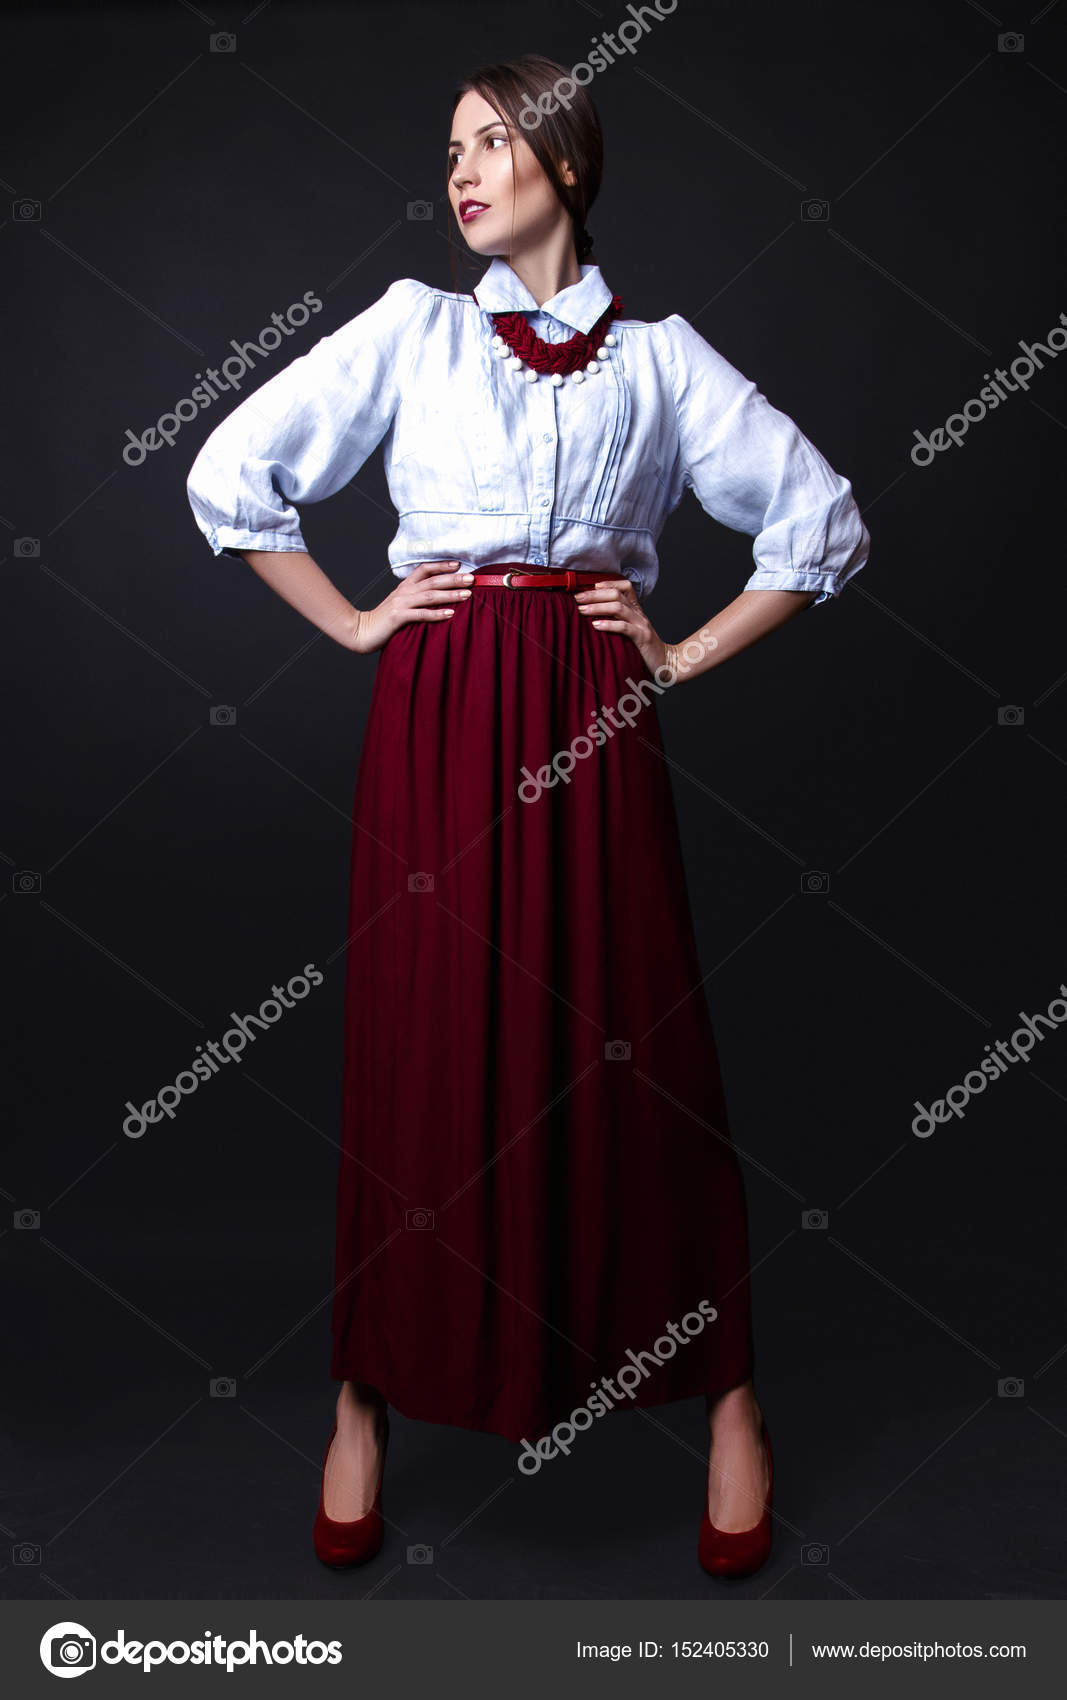 65f8a6f1b6 Young sexy girl. Fashion portrait of young beautiful woman in skirt and  shirt. Black background — Photo by ...